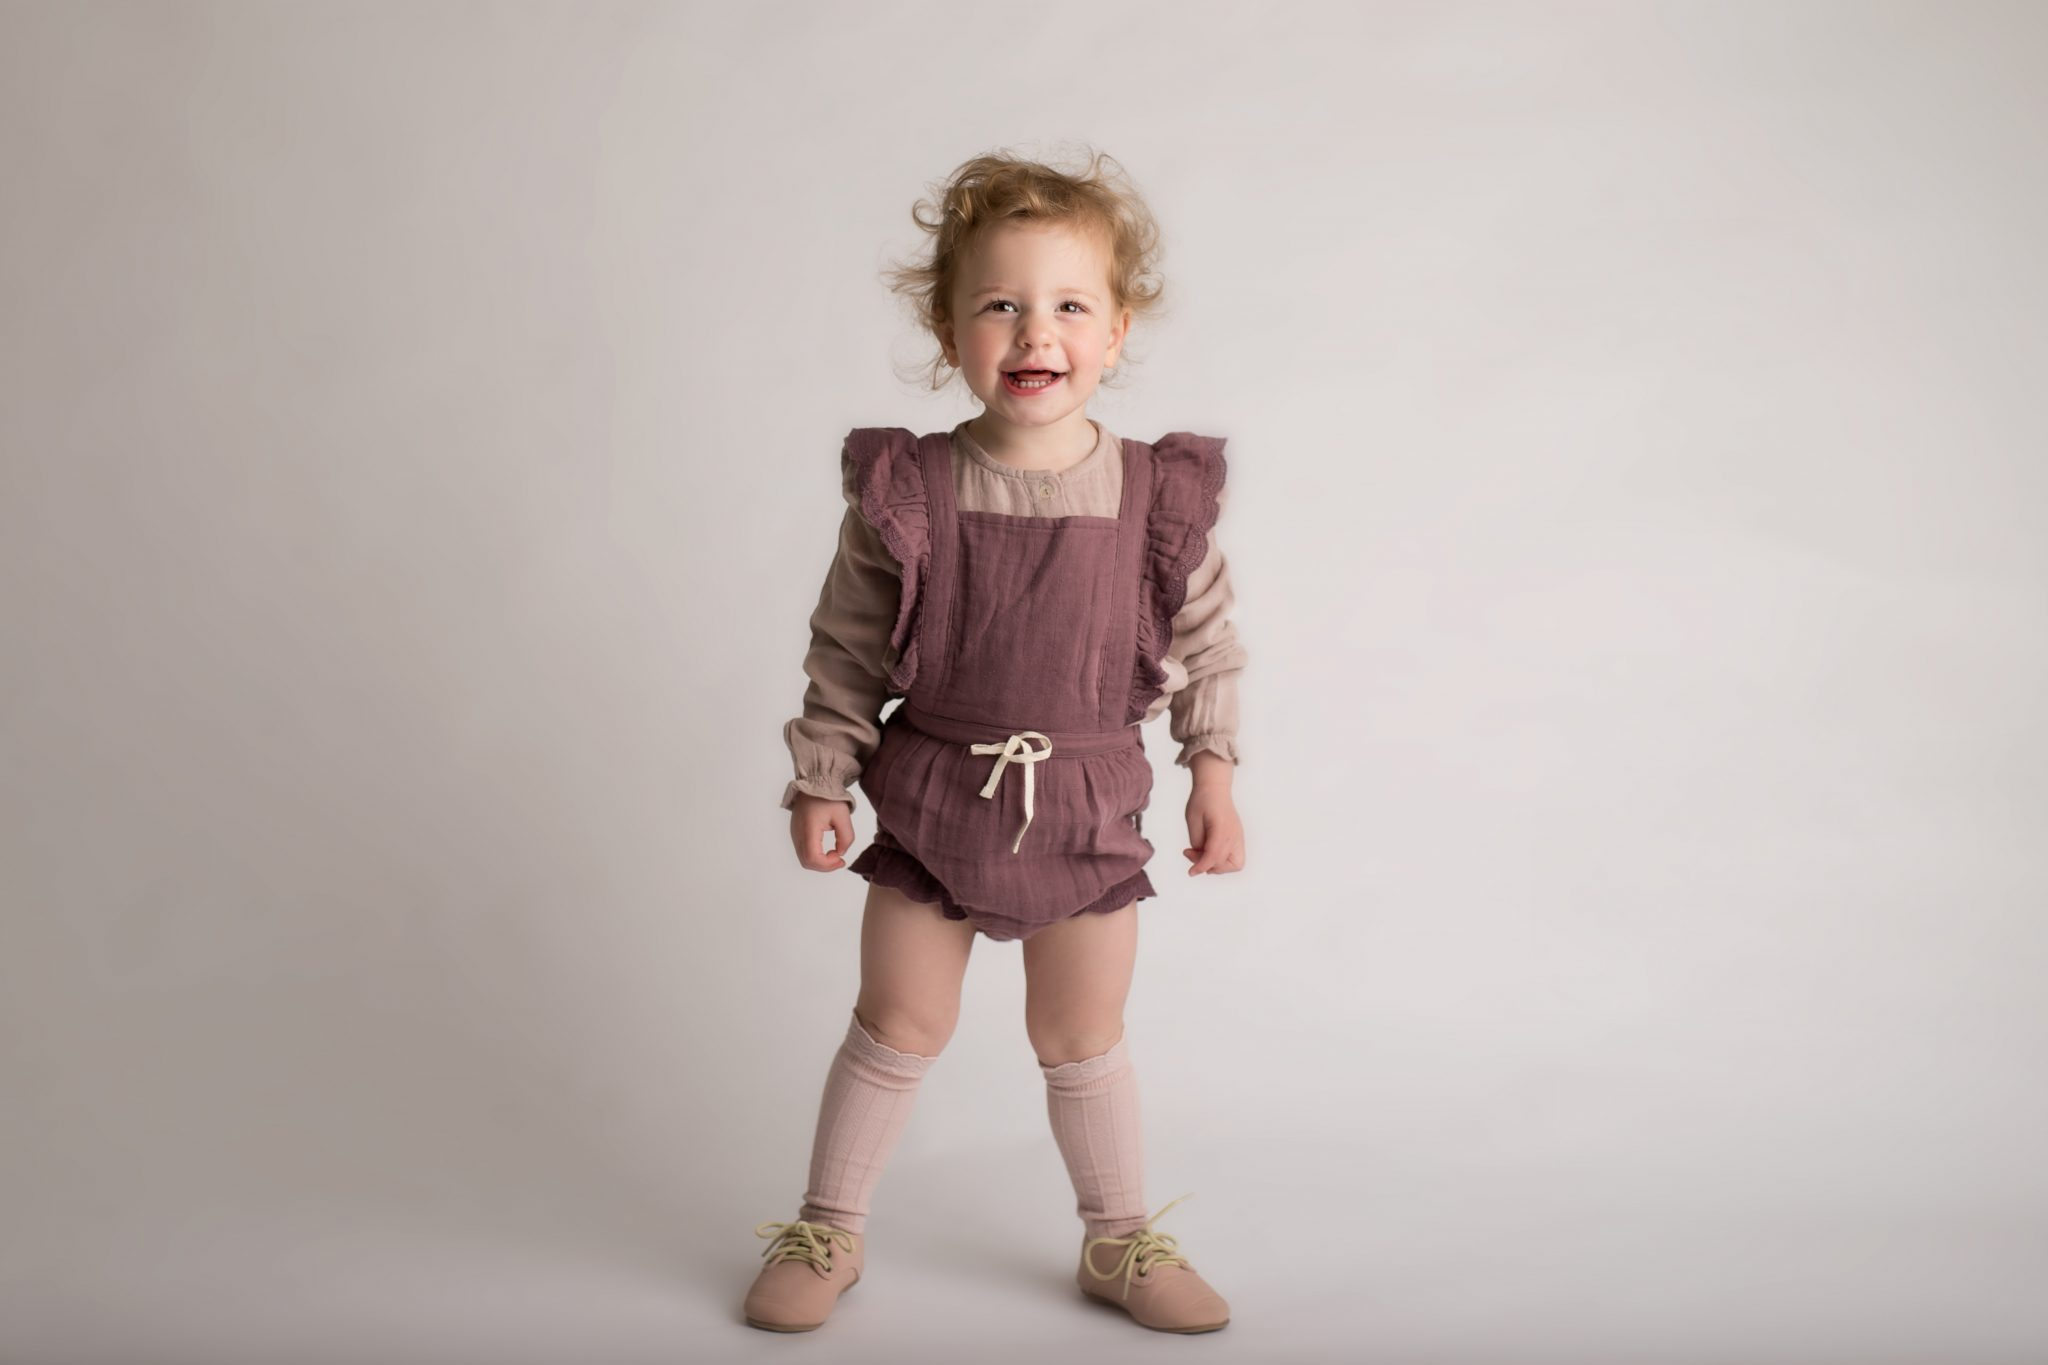 two year old girl in studio